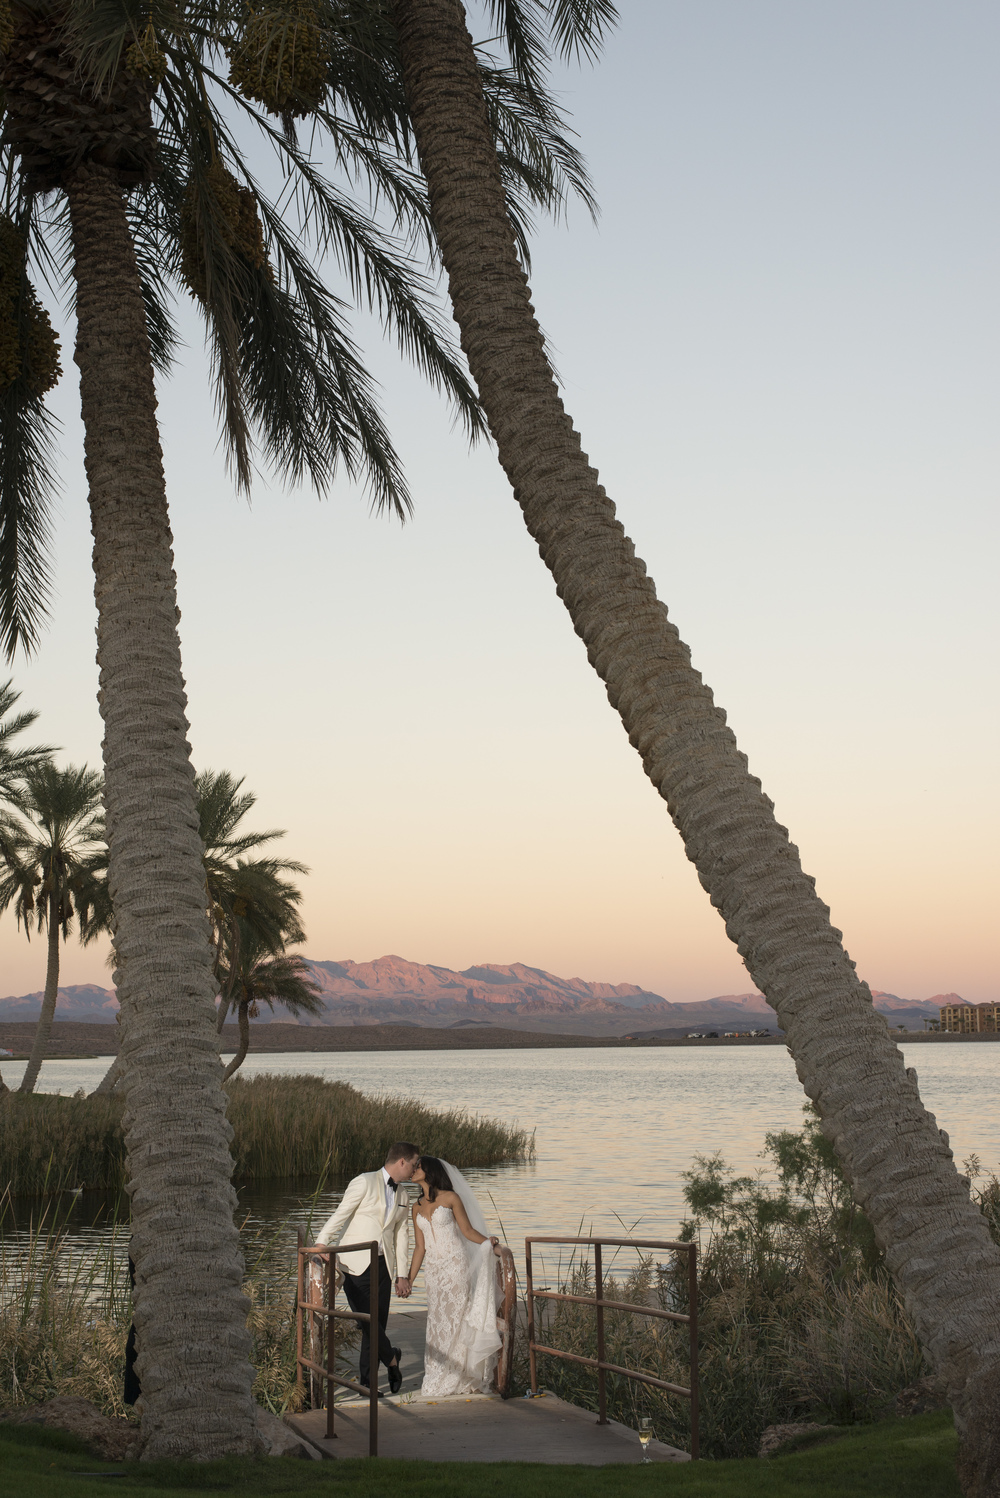 Wedding photos under palm tress.  Vendor Credits: Las Vegas Wedding Planner:  Andrea Eppolito Events  | Venue: The Westin Lake Las Vegas  |  Floral & Decor:  Flora Couture |  Photography:  Altf Photography  |  Videography: Something New Films  | Wedding Cake:  Peridot Sweets  |  Beauty by:  Make Up in the 702  |  Wedding Gown: P'Nina Tornai  |  Veil: Kleinfeld New York  |  Shoes:  Christian Louboutin  |  Tuxedo:  Men's Warehouse